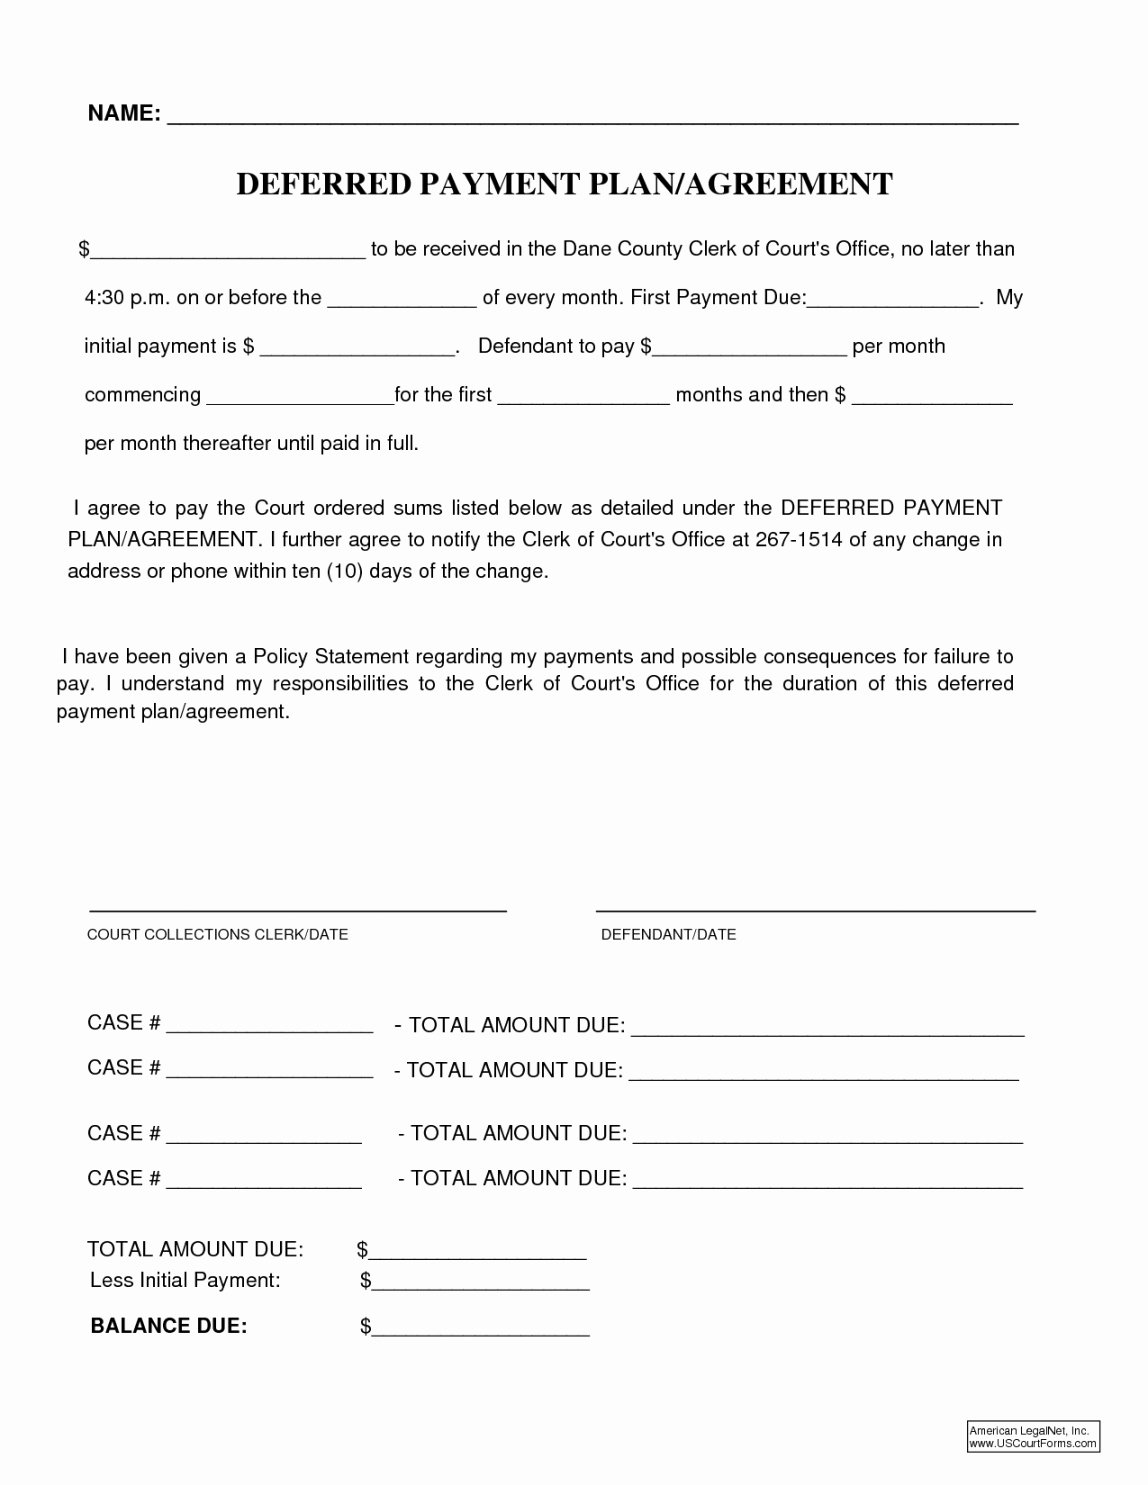 Installment Payment Plan Agreement Template Elegant Payment Plan forms Templates